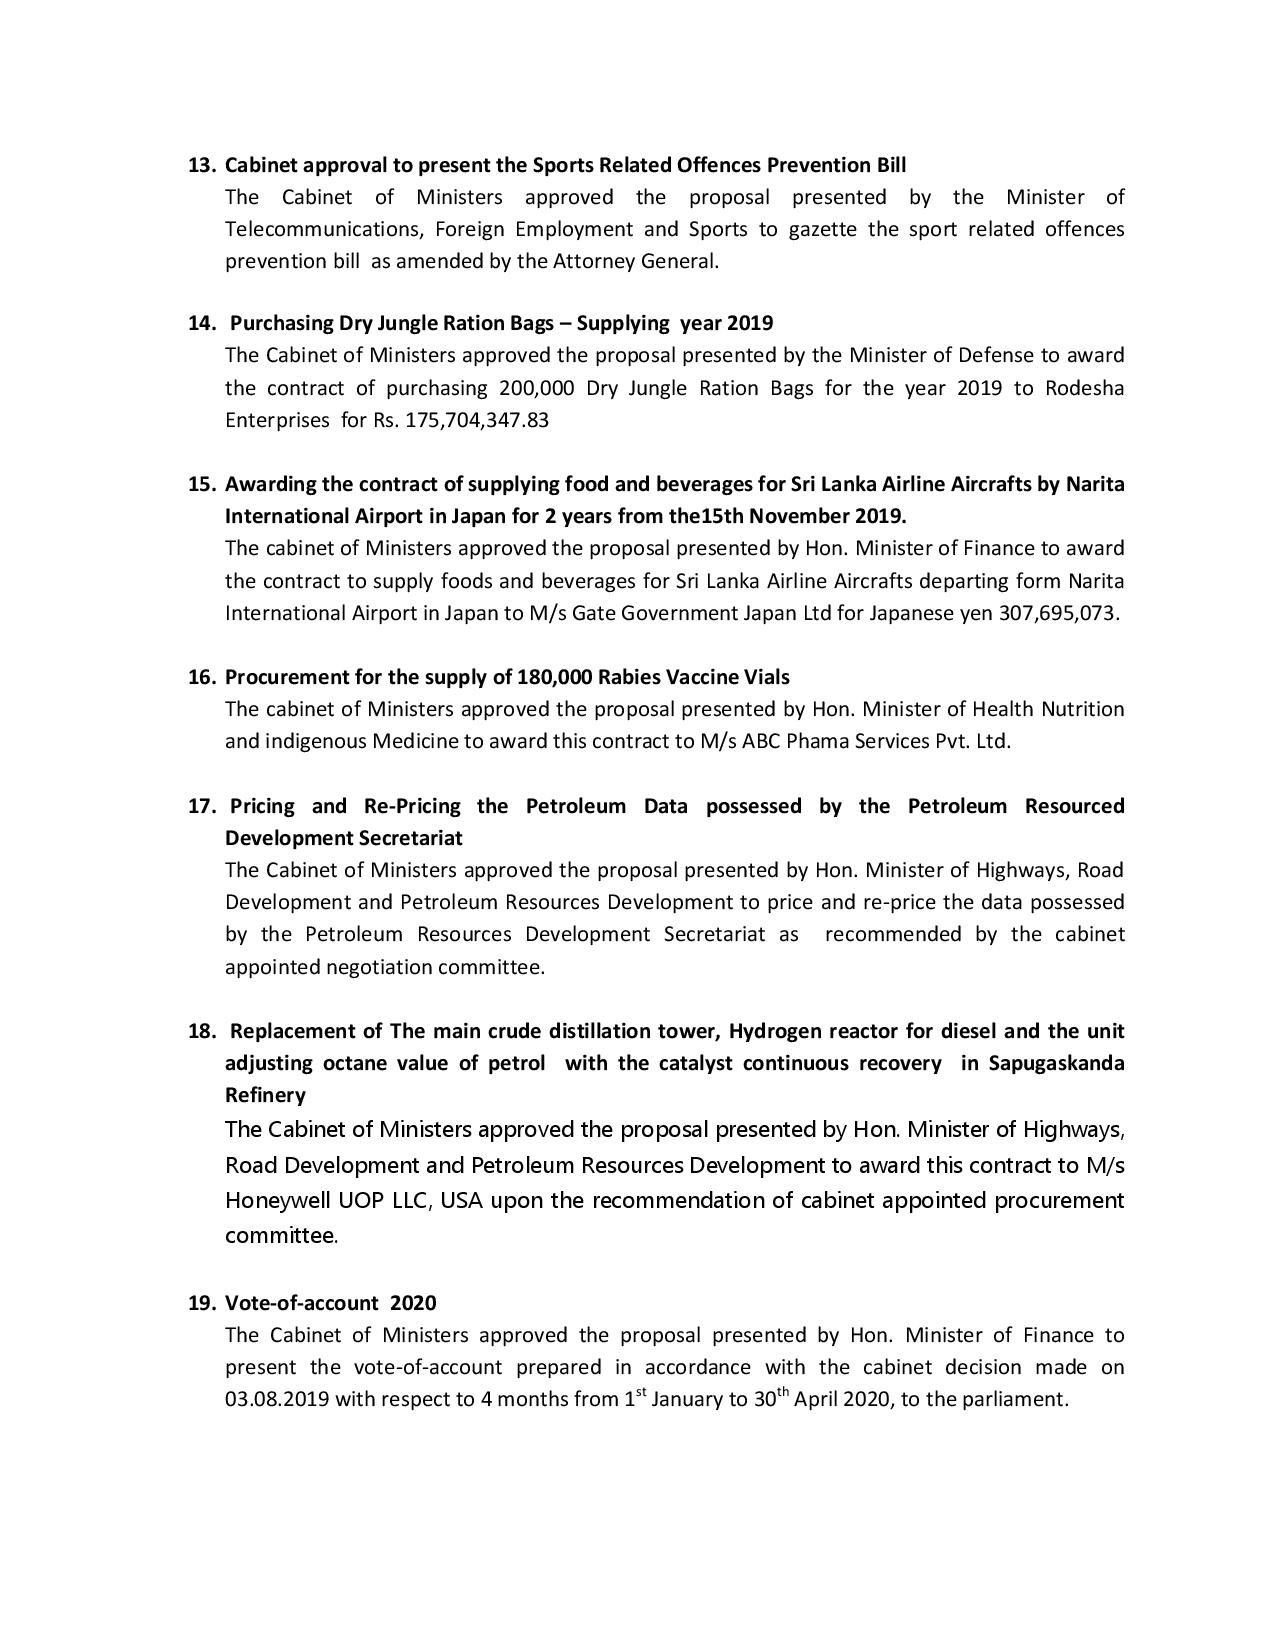 Decisions Taken by Cabinet of Ministers on theE 01.10.2019 page 003